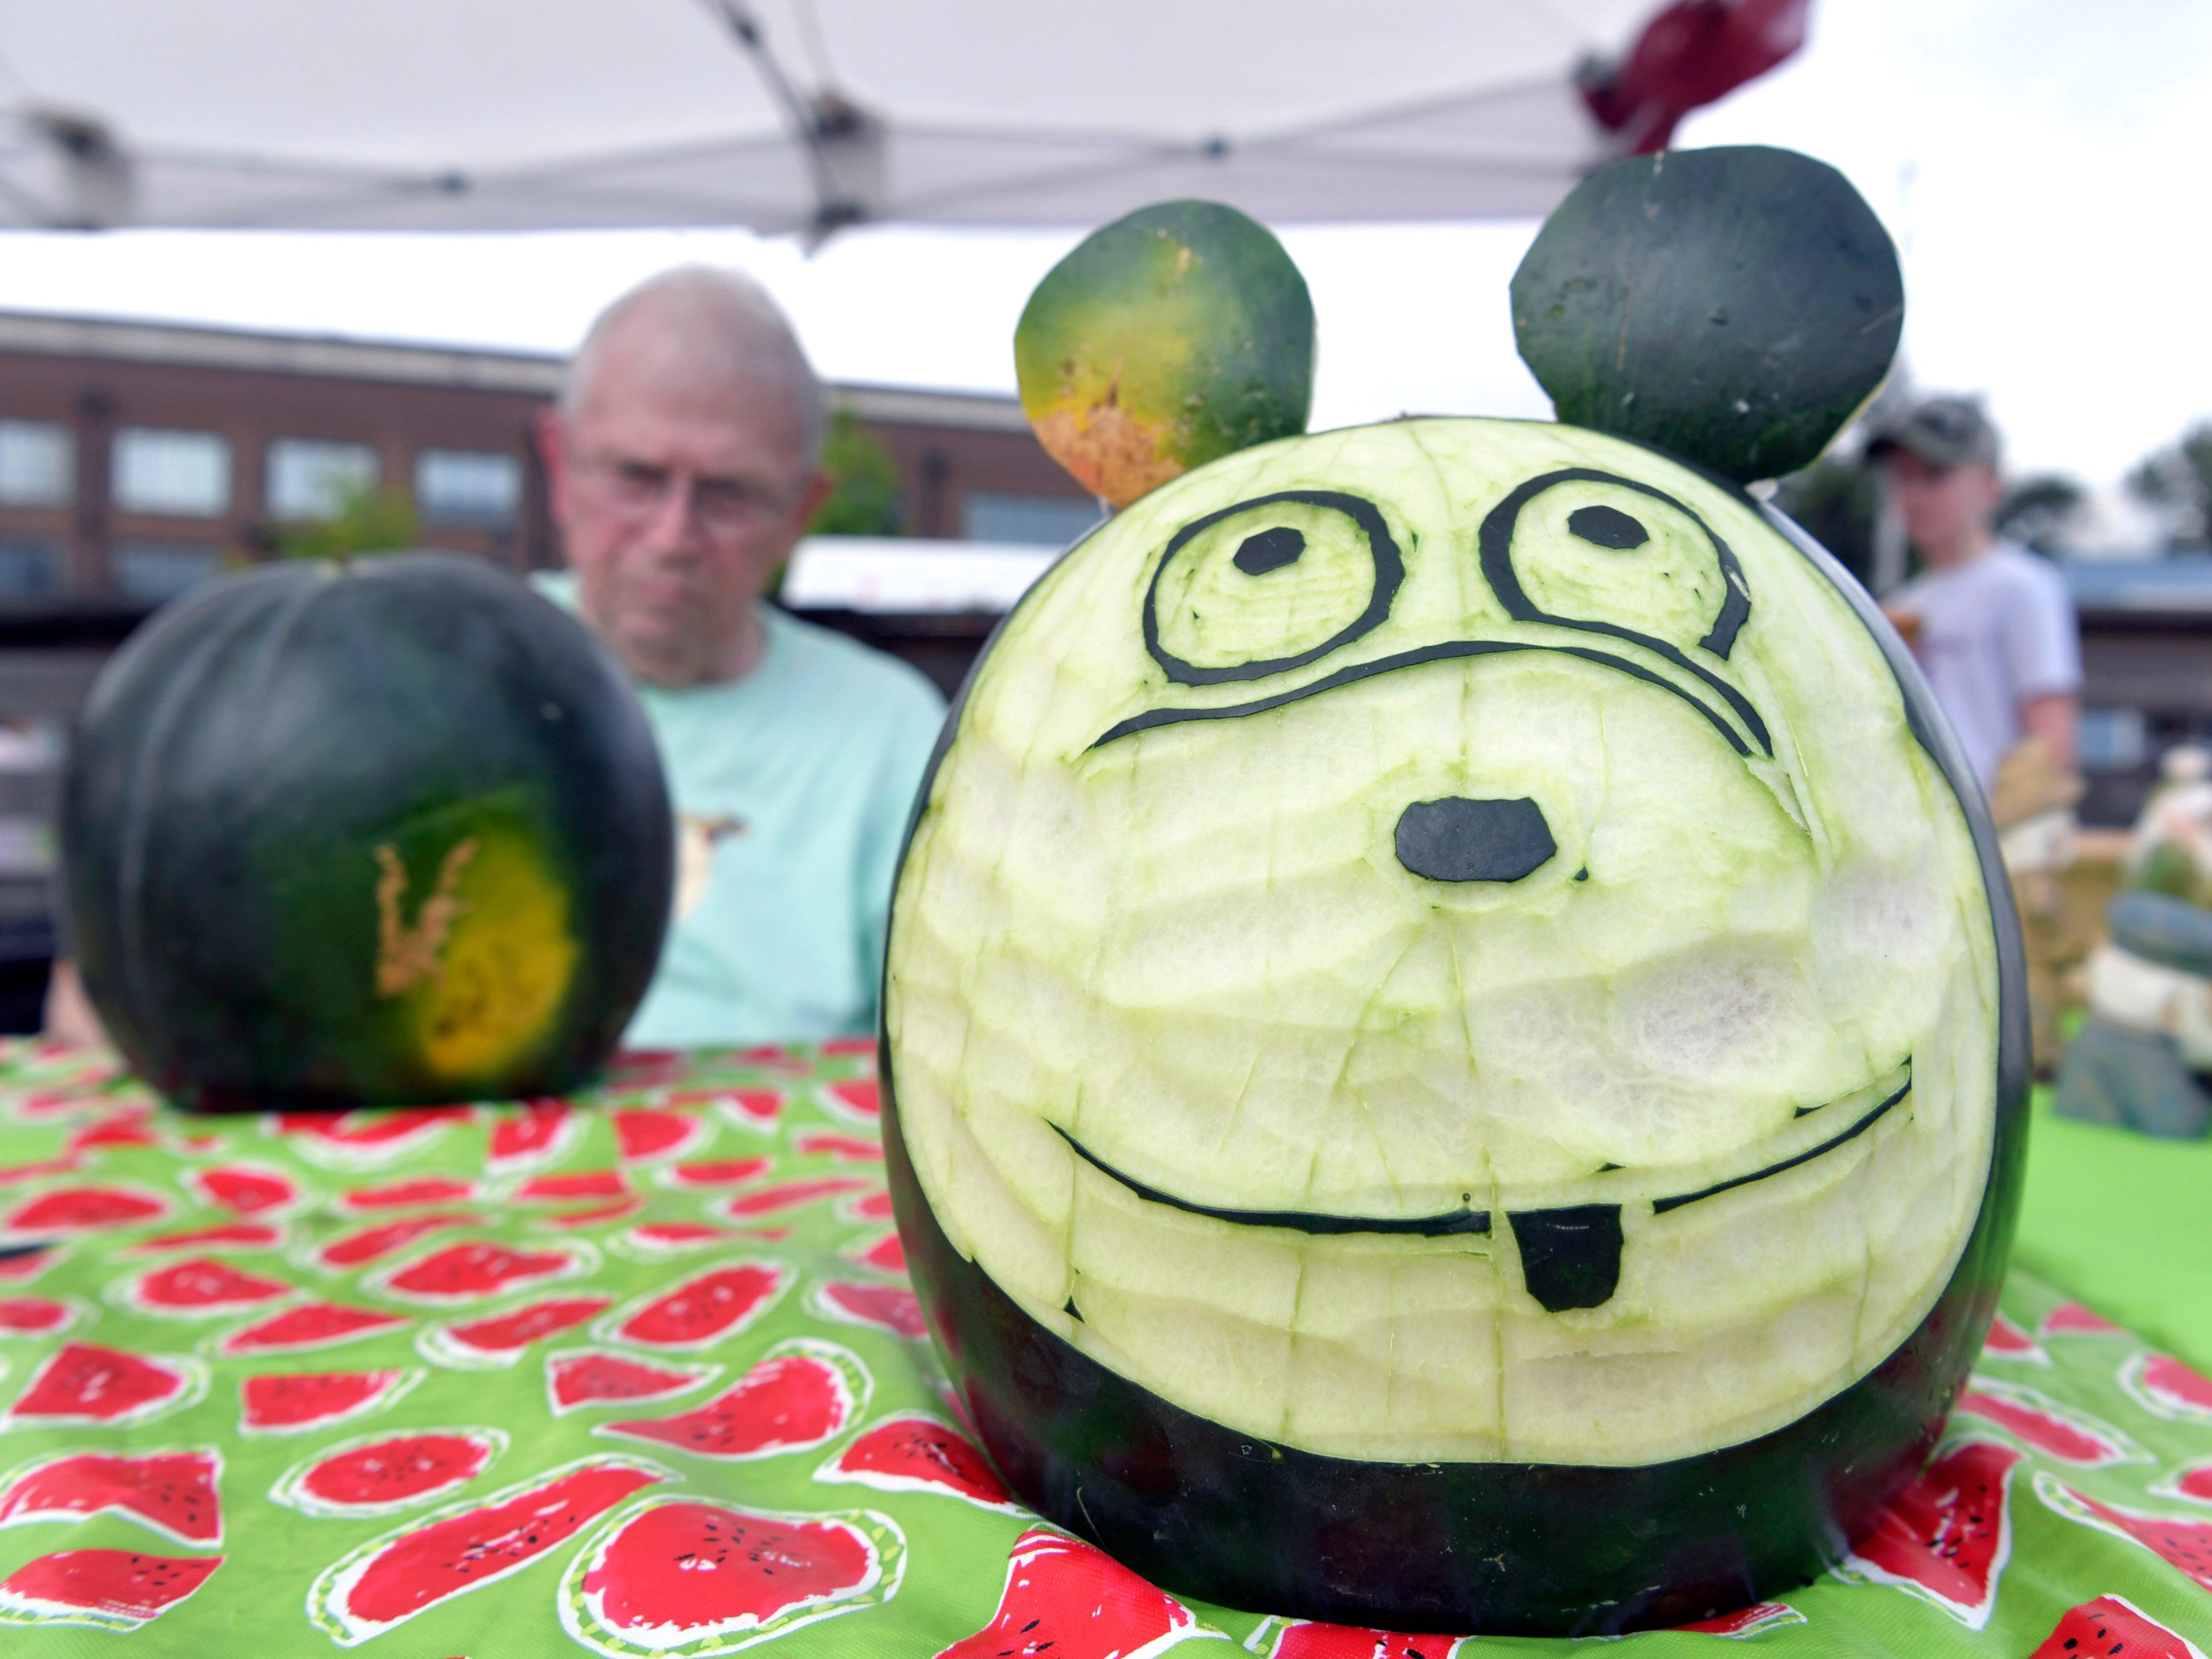 Leipers Fork Carving Club held watermelon carving demonstrations at the Franklin Watermelon Festival's  at the Franklin Farmers Market in Franklin, Tenn. on Saturday,  August 18, 2018.